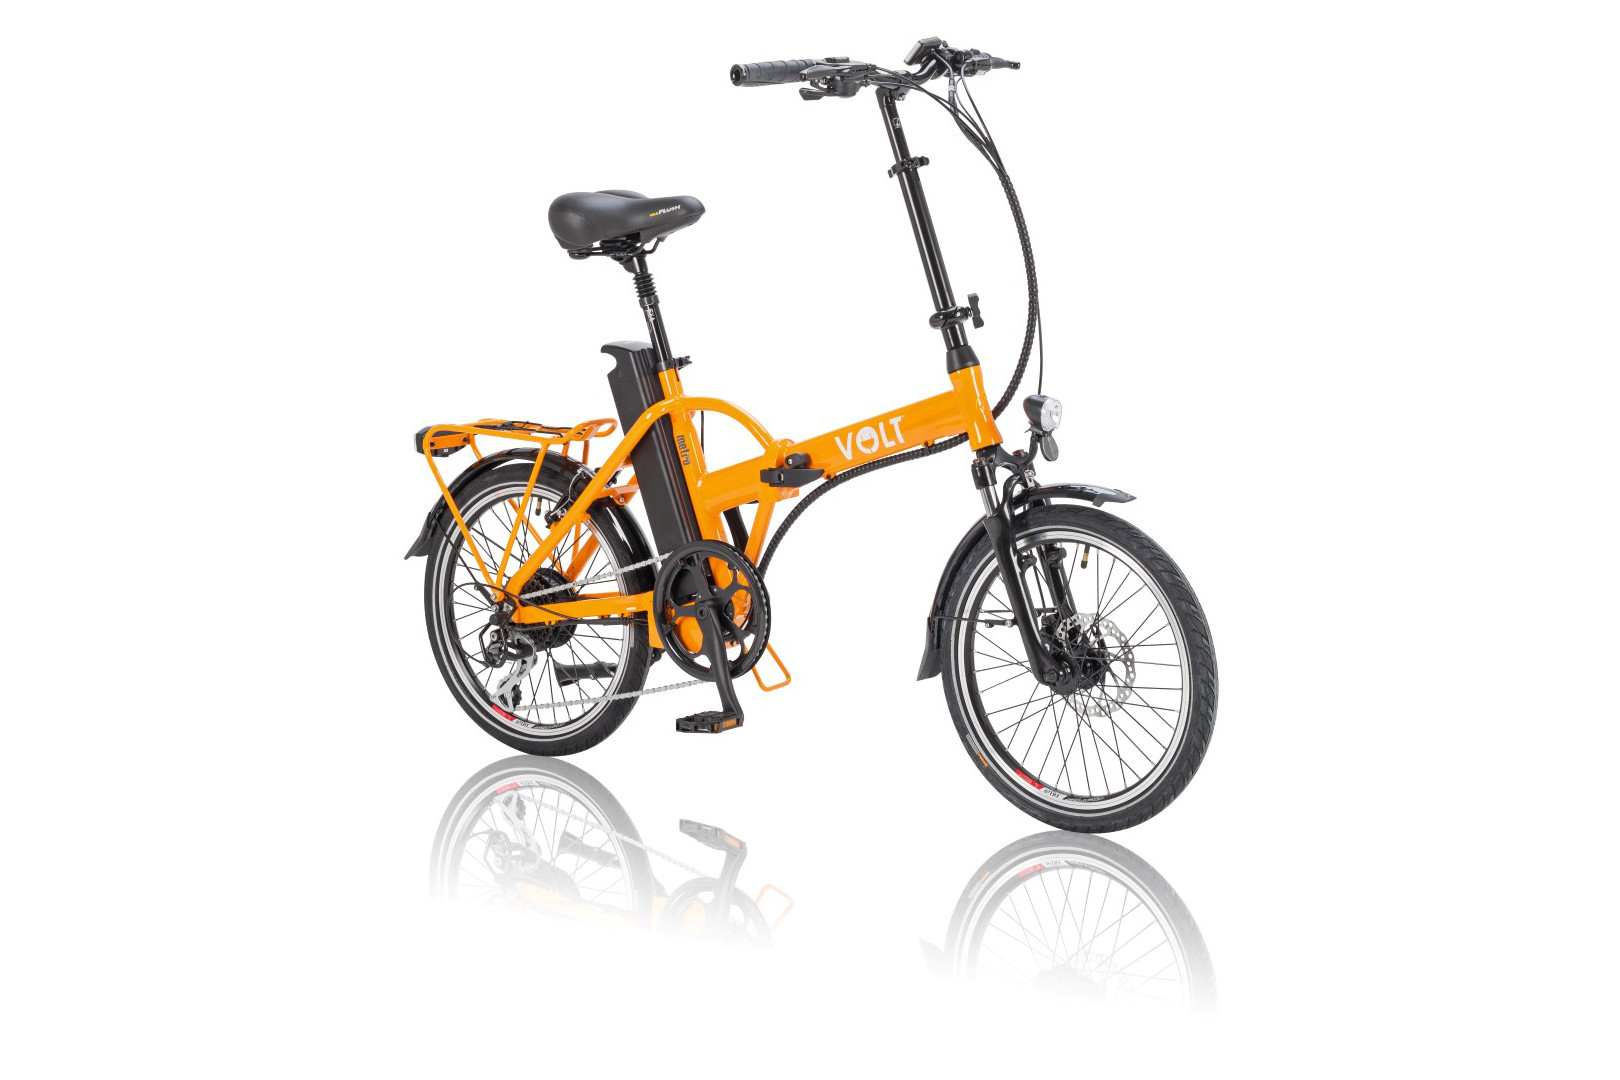 VOLT™ Metro Orange colour folding electric bike